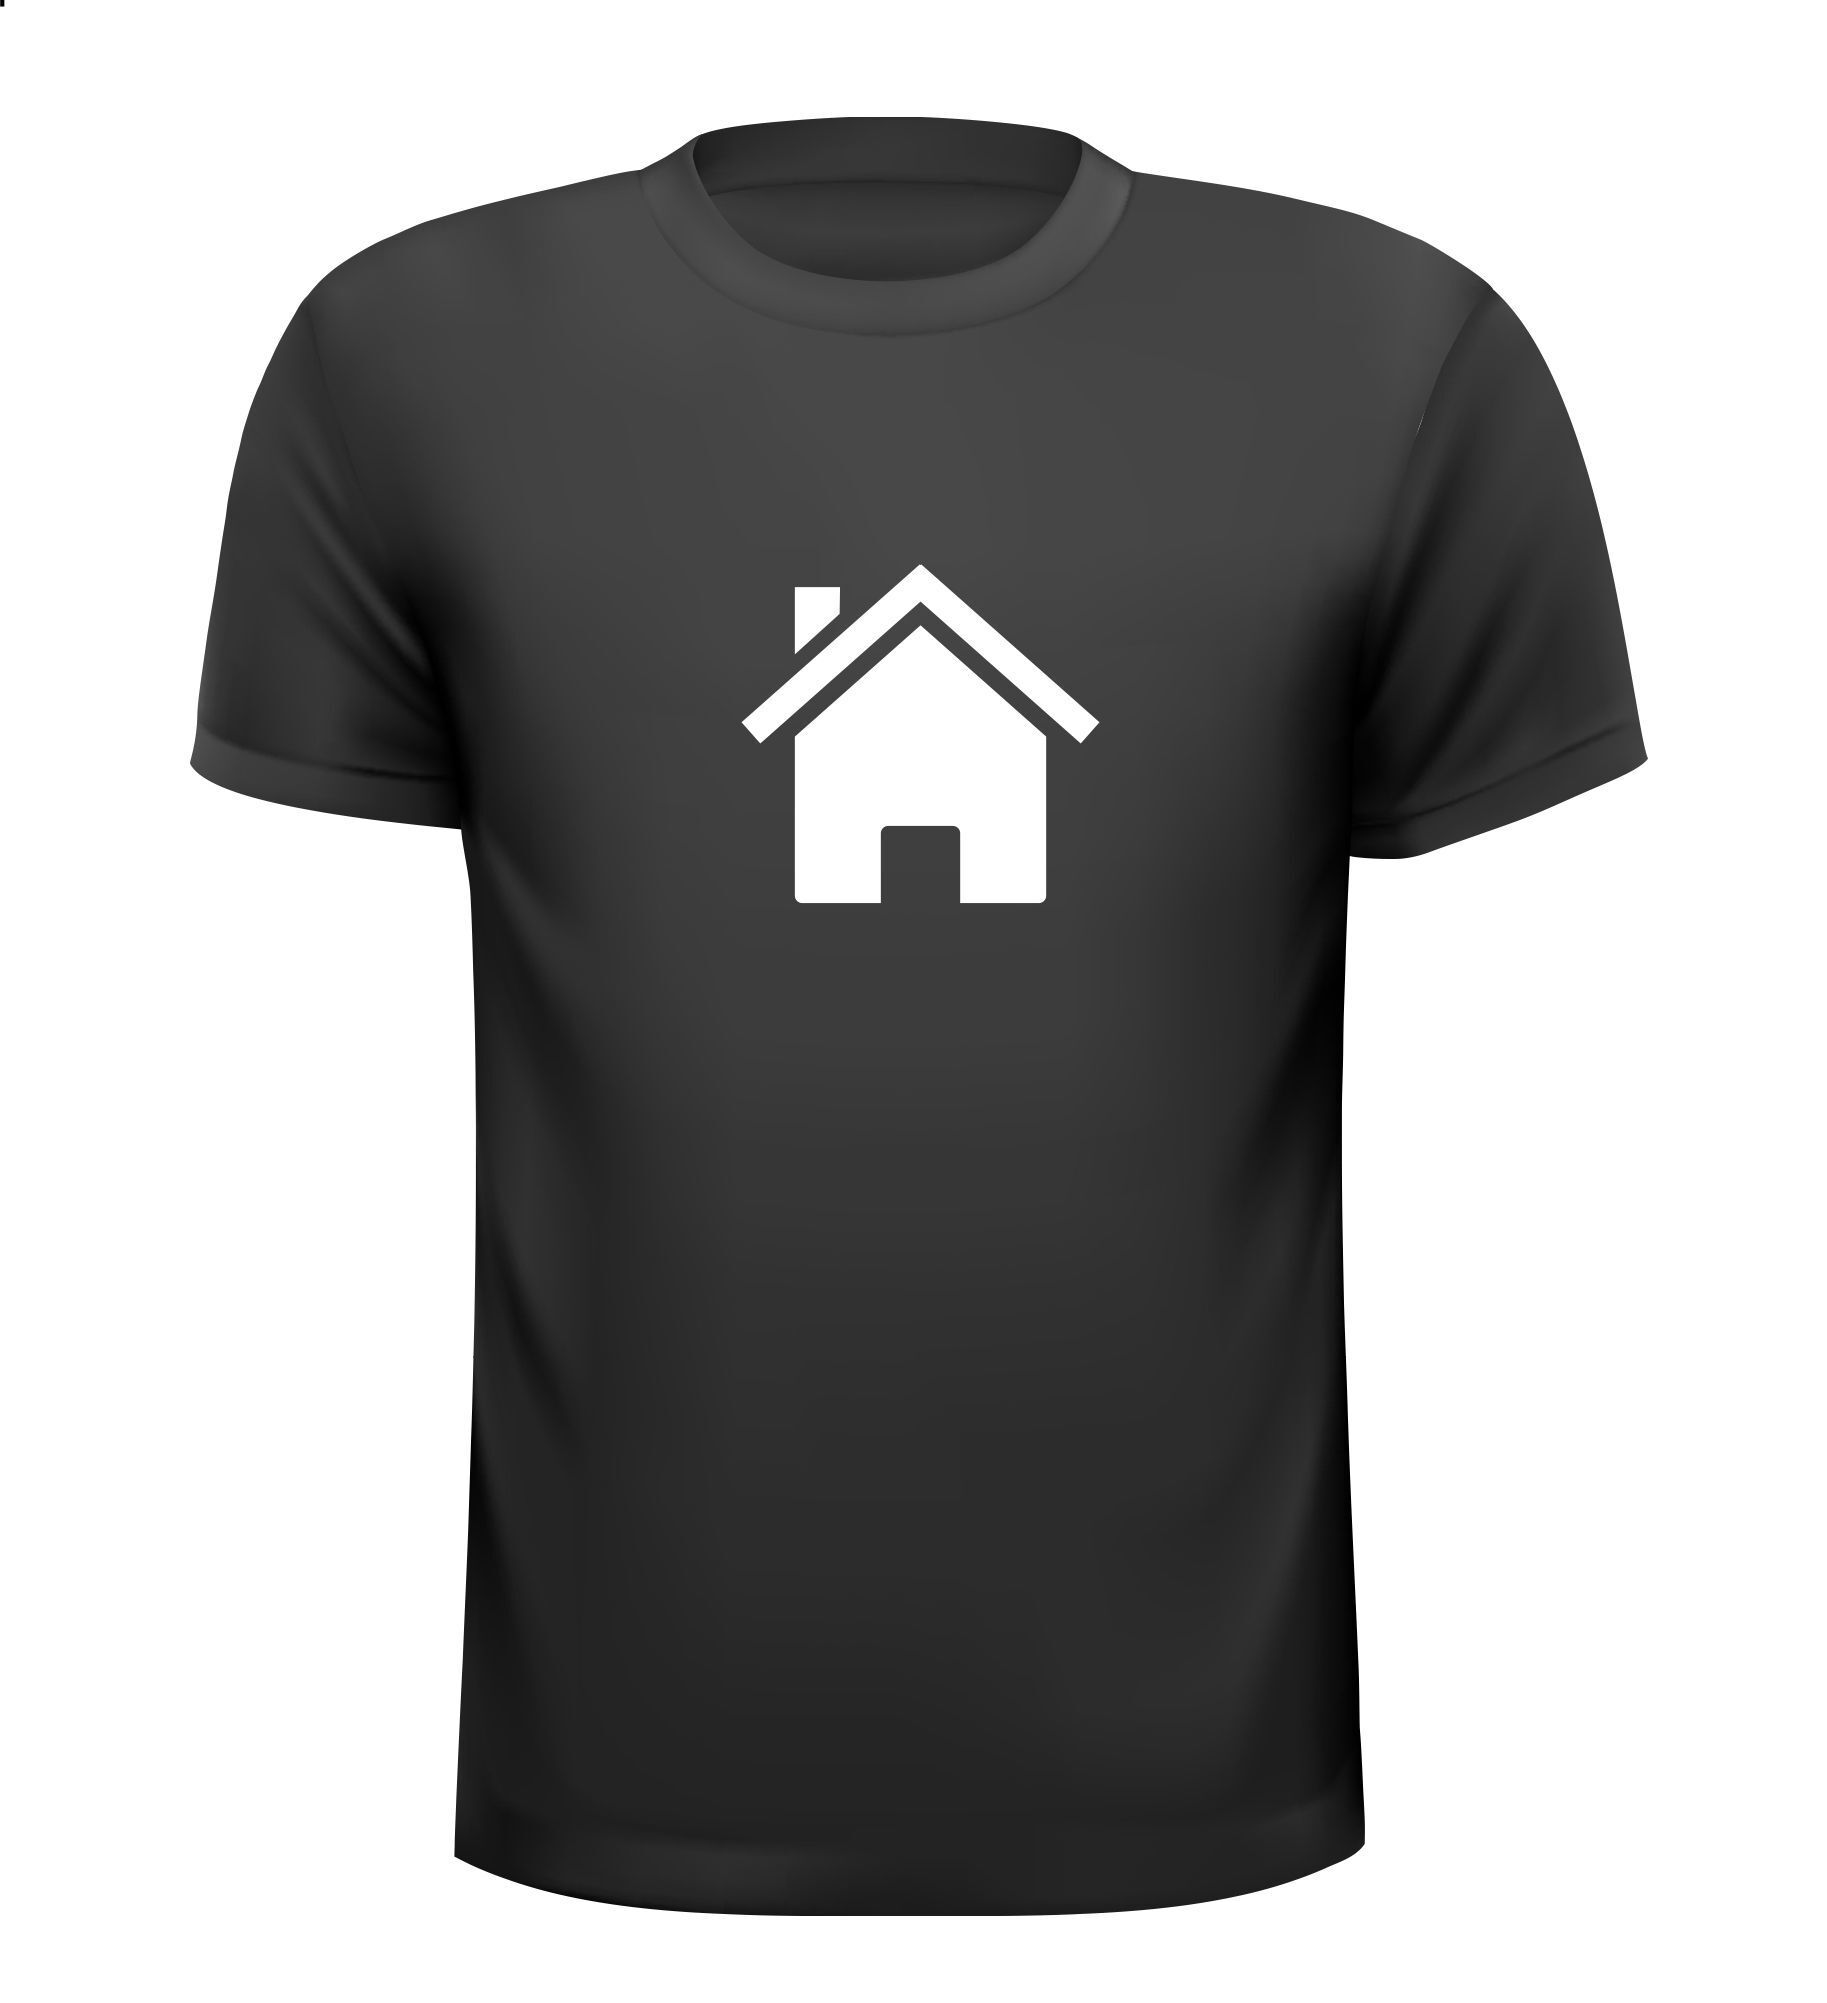 Huis icon woning icon t-shirt home